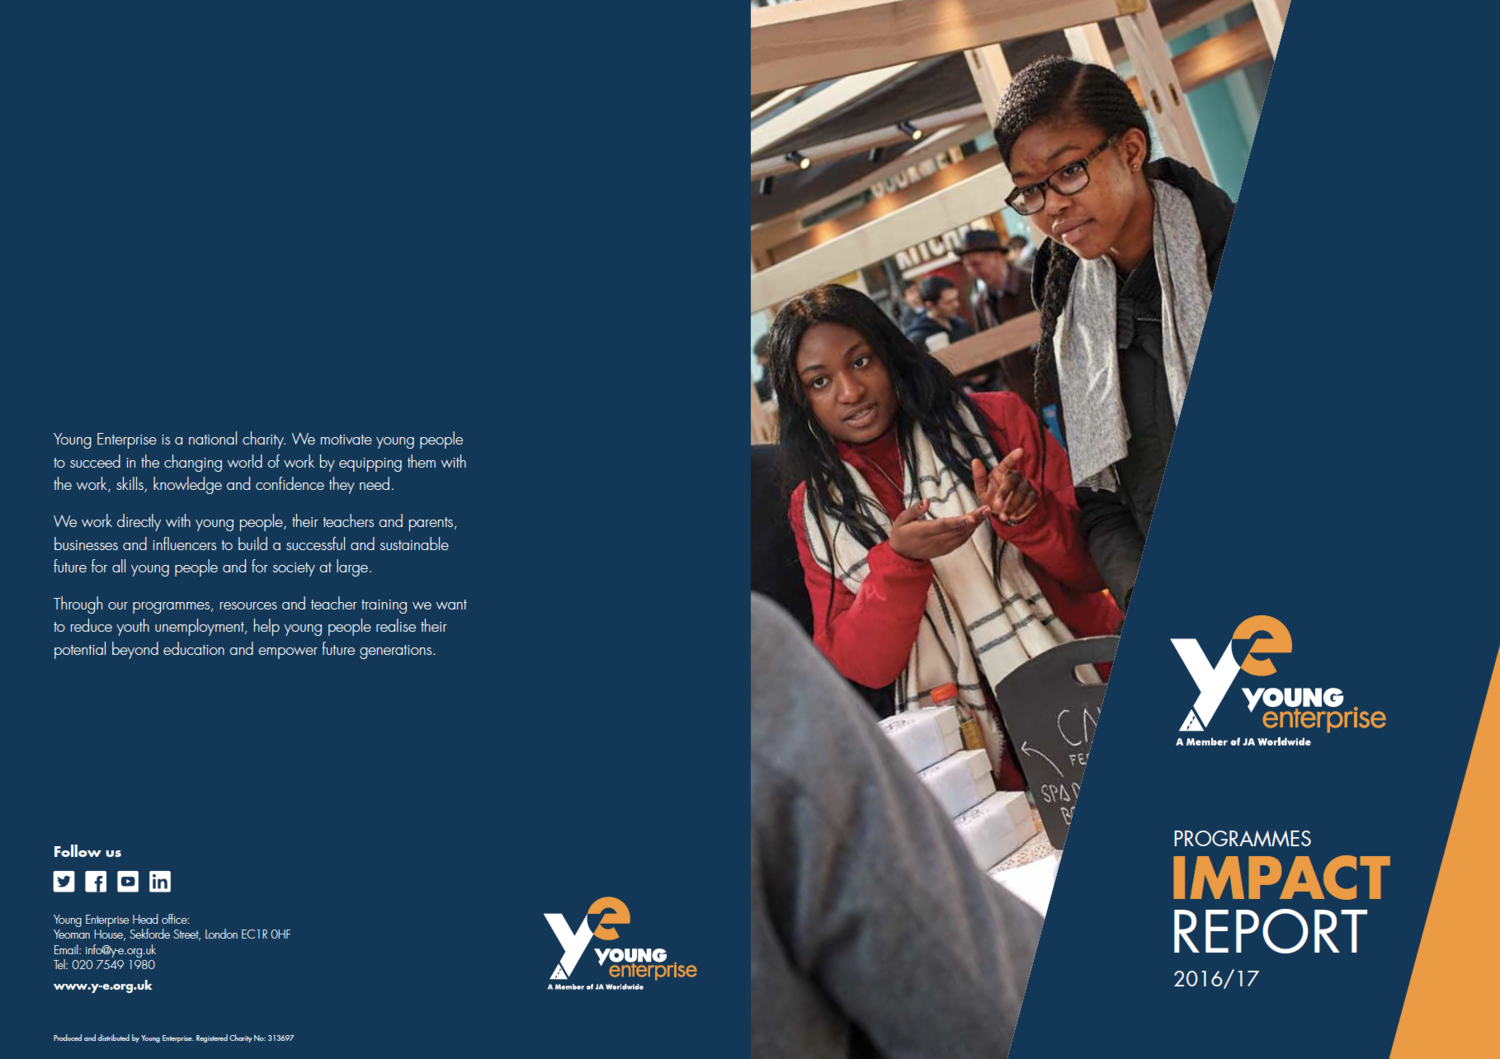 05-Young Enterprise Programme's Impact Report 2016-17-cover.png